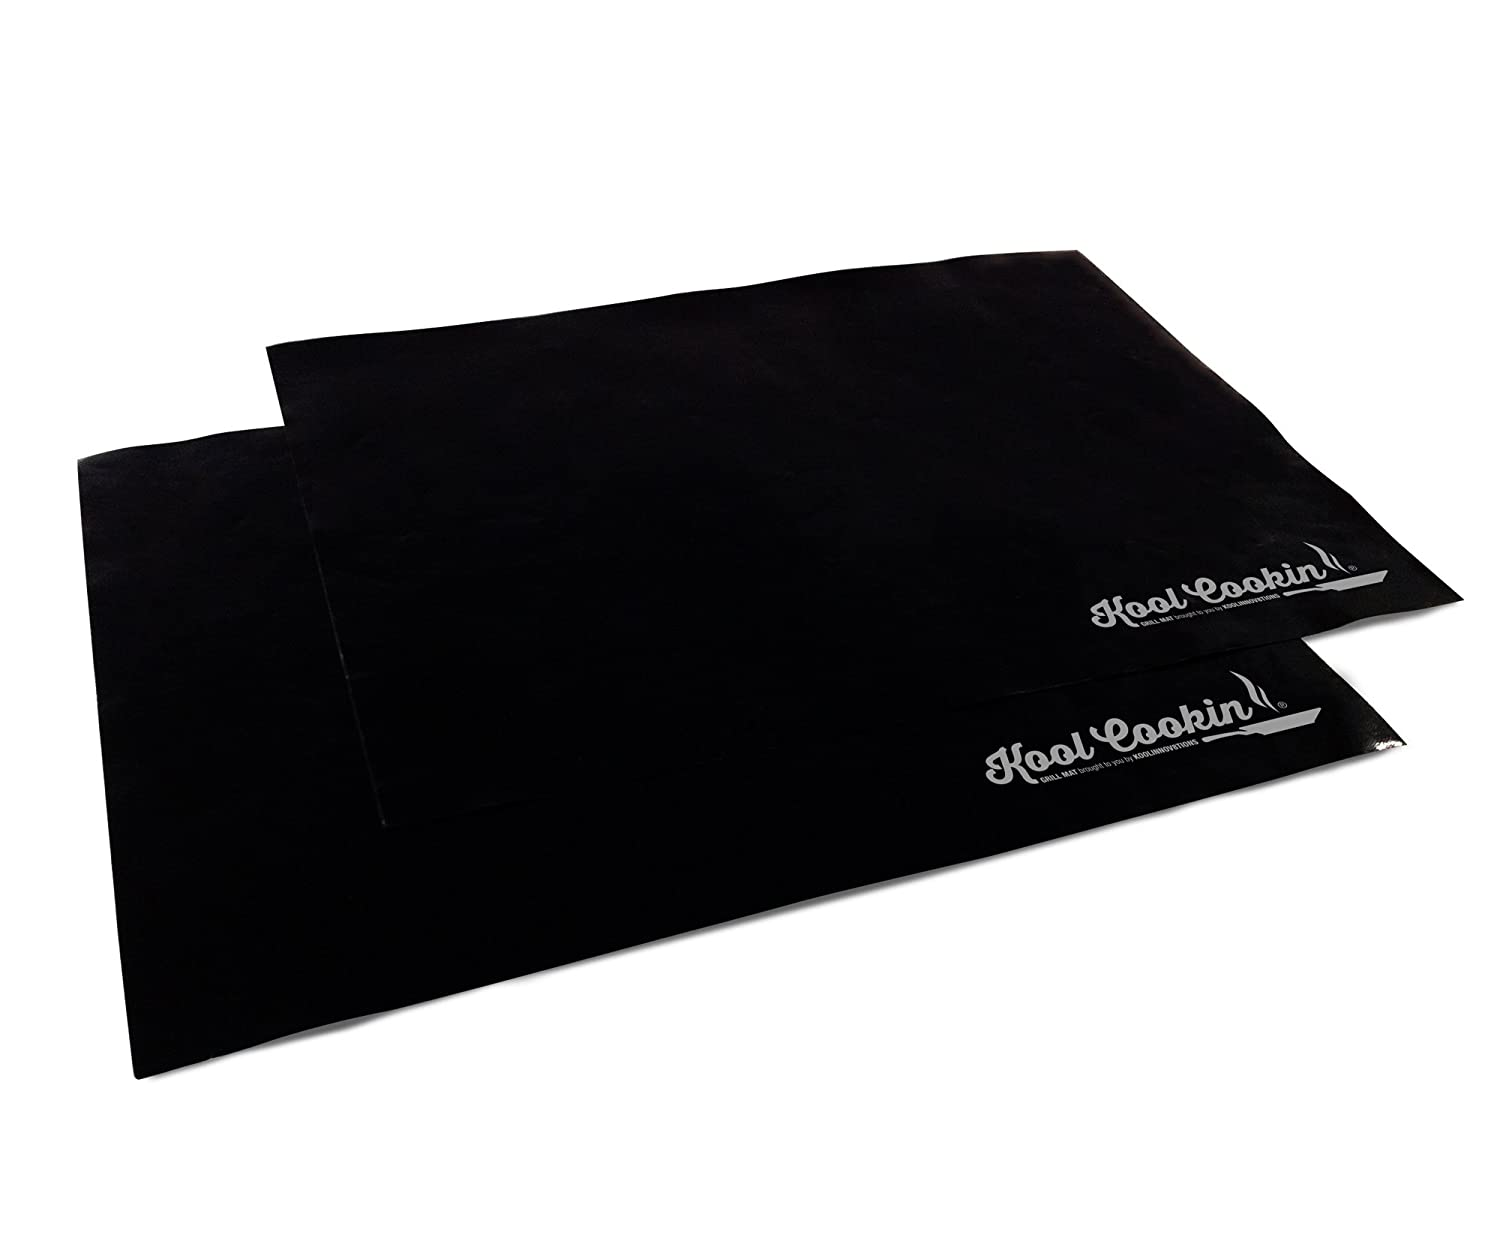 BBQ Grill Mat & Nonstick Oven Liner - Set of 2 Heavy Duty Cooking Mats Best For Charcoal Barbecue Grilling, Baking in Gas and Electric Ovens, Broiler Tray Liners, Reusable Dishwasher Safe